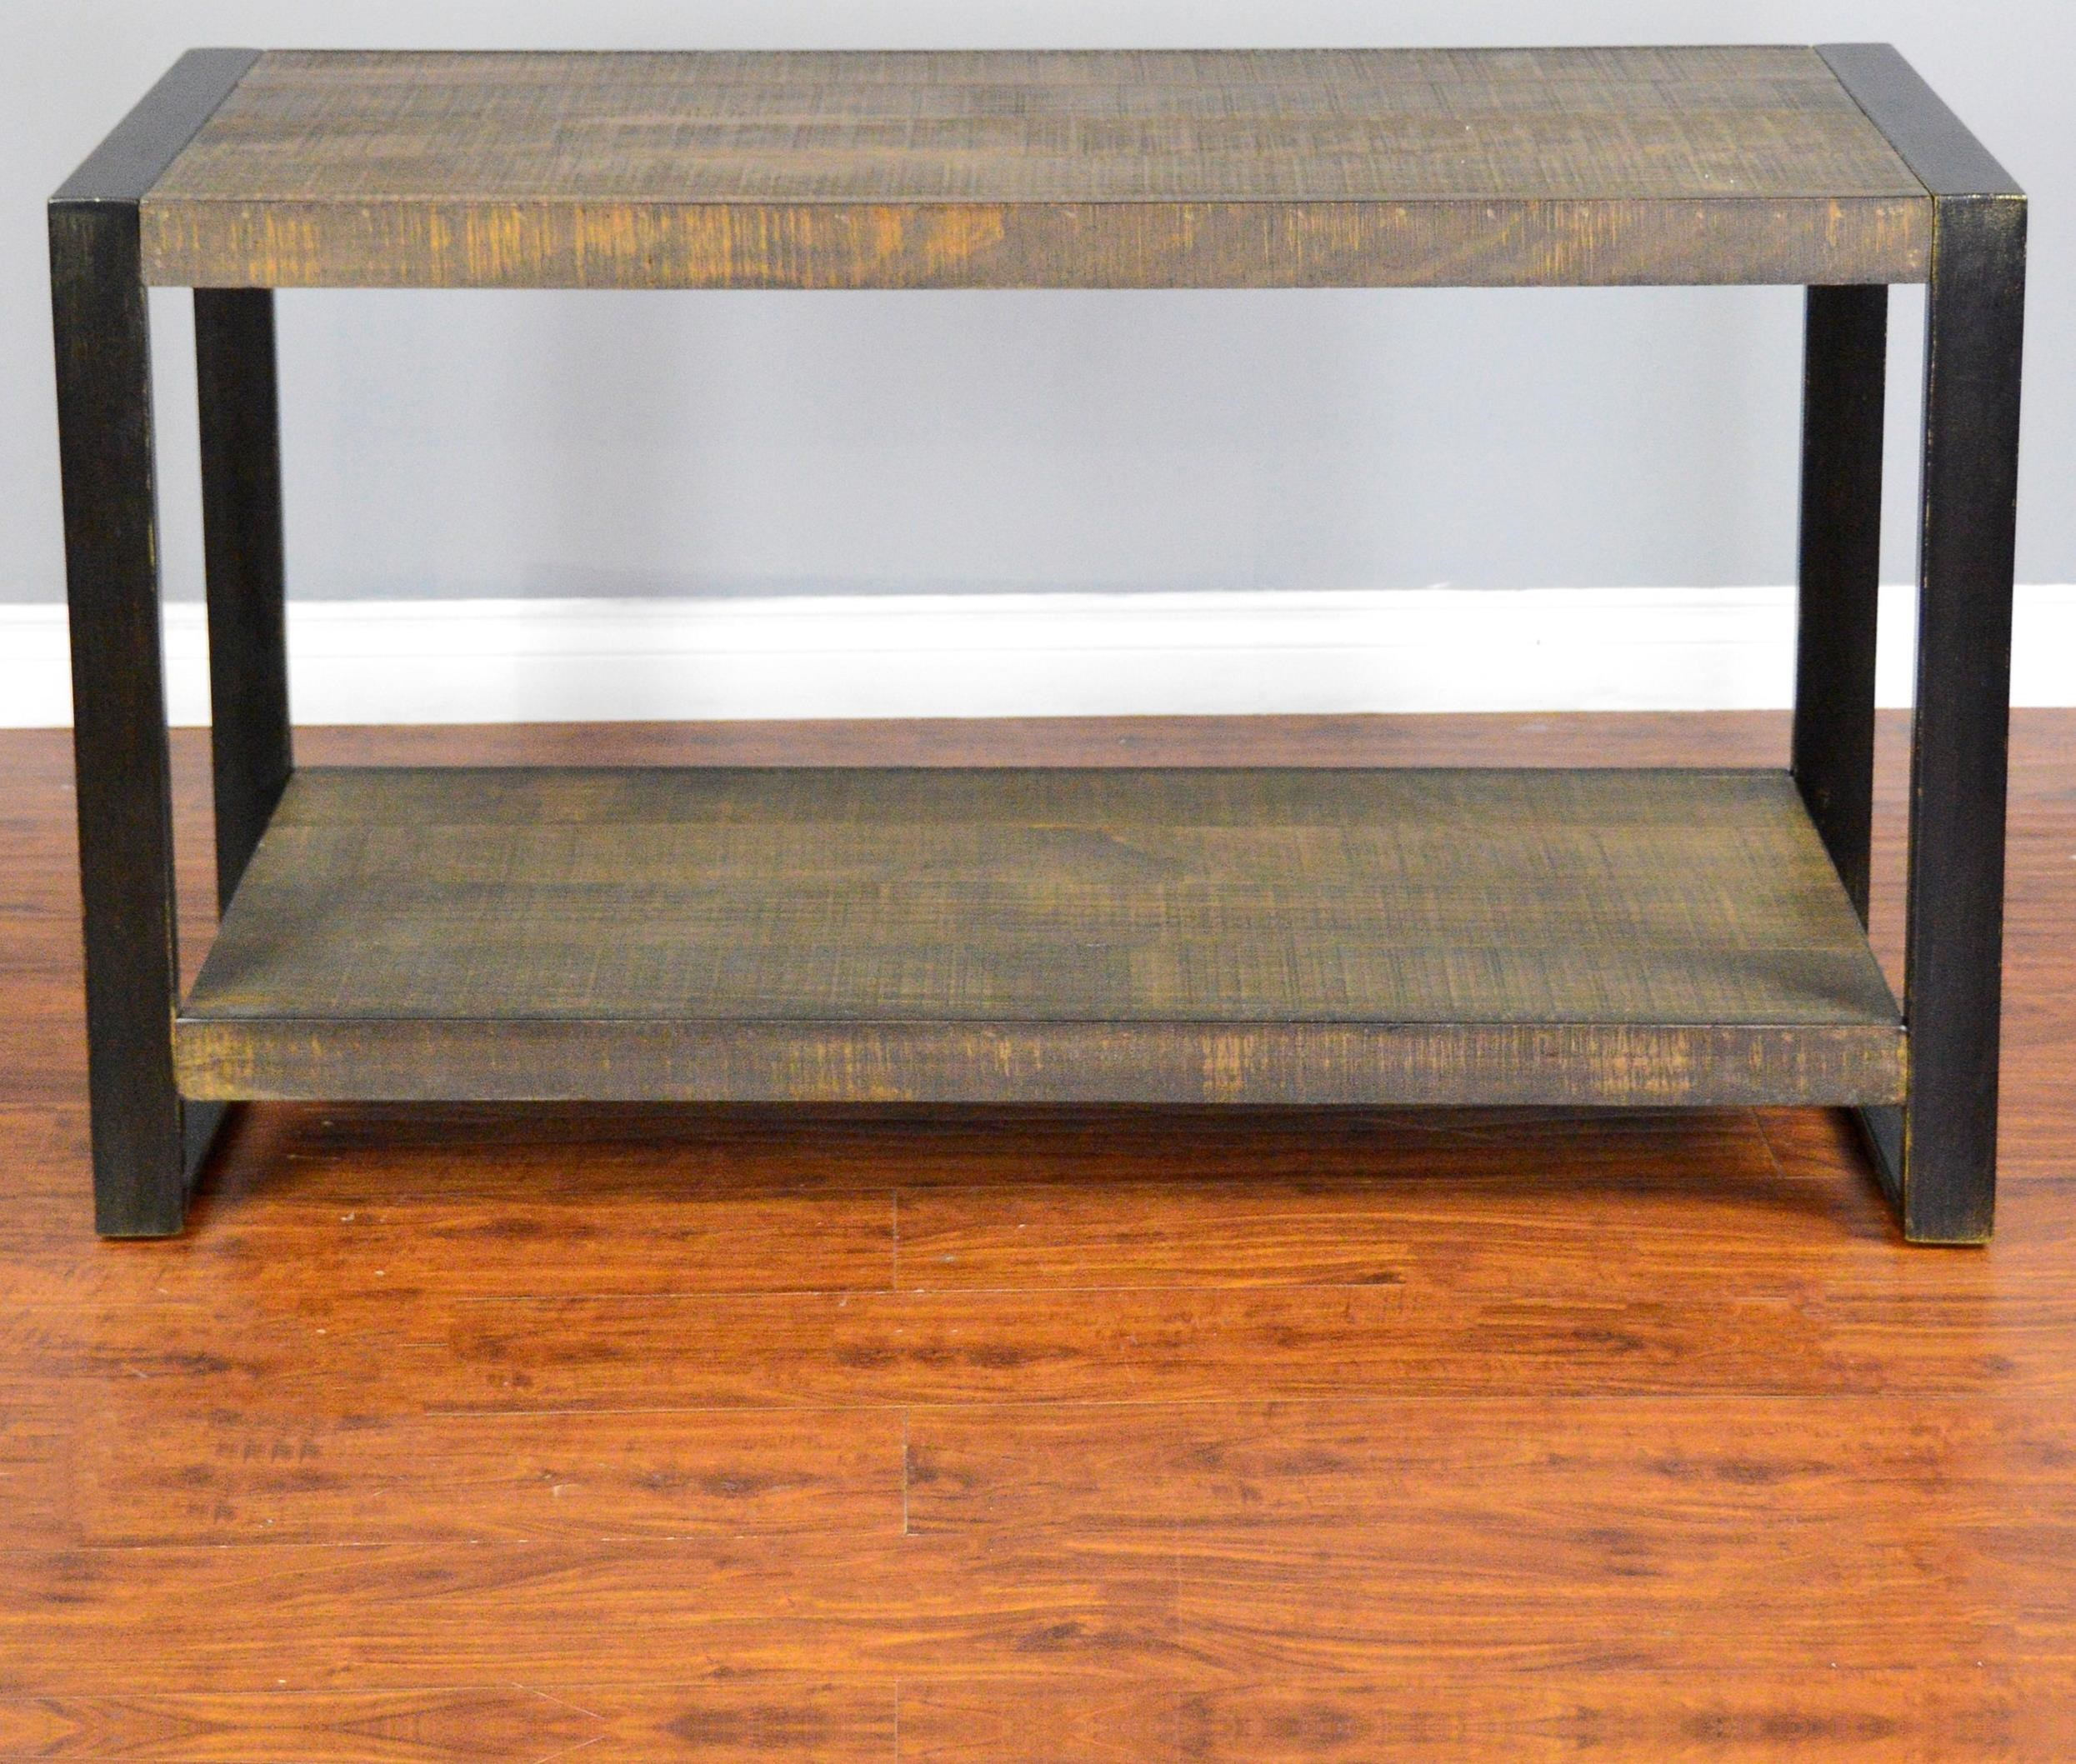 Distressed pine sofa console table with industrial metal